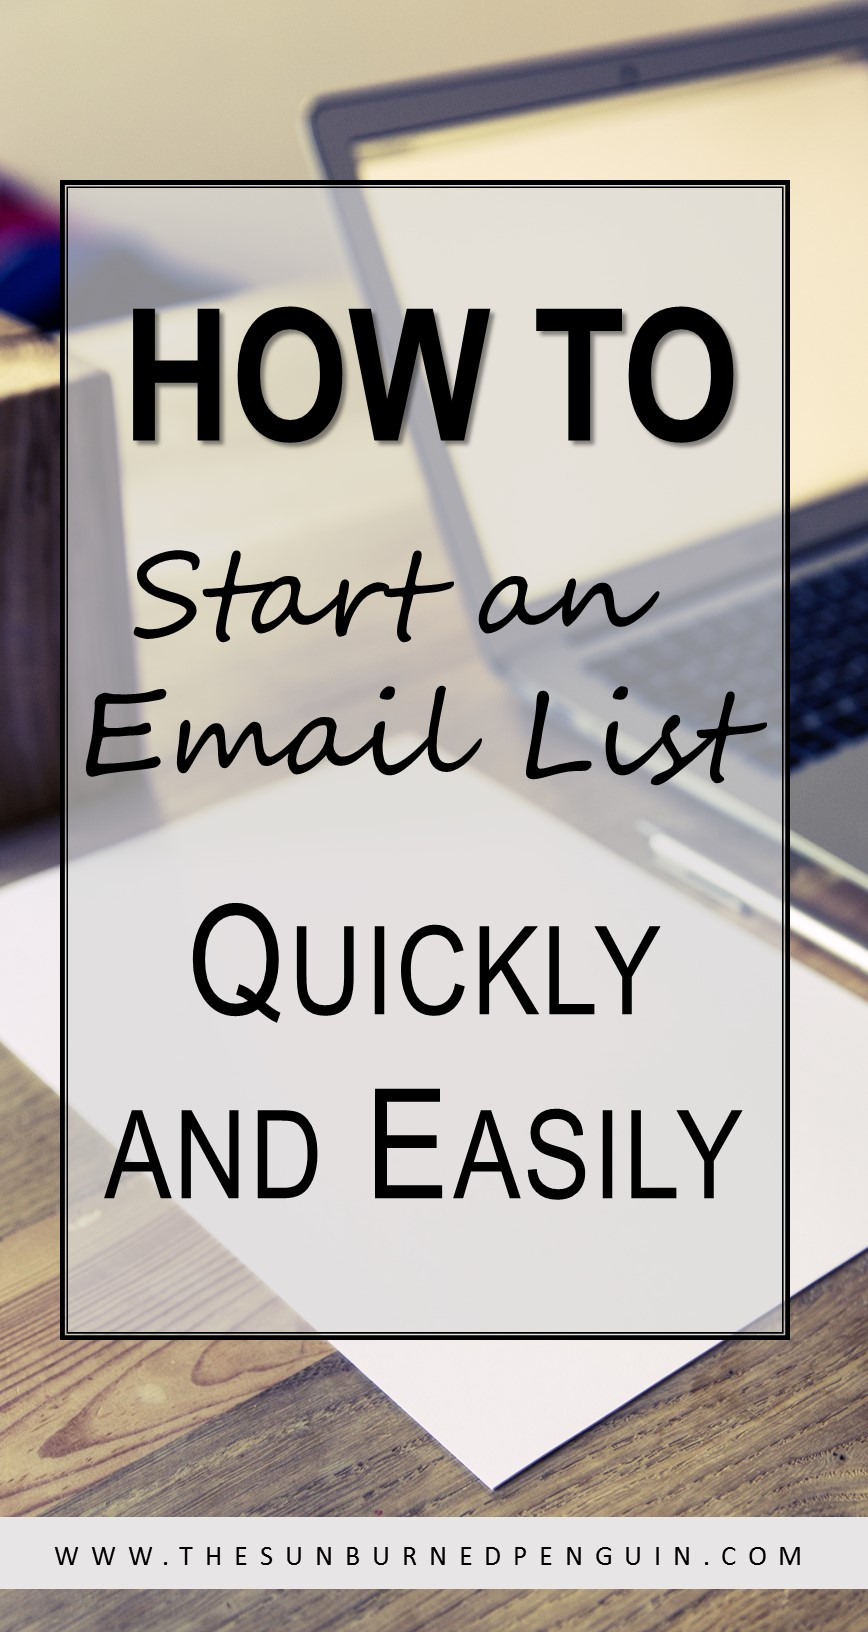 How to Start an Email List Quickly and Easily